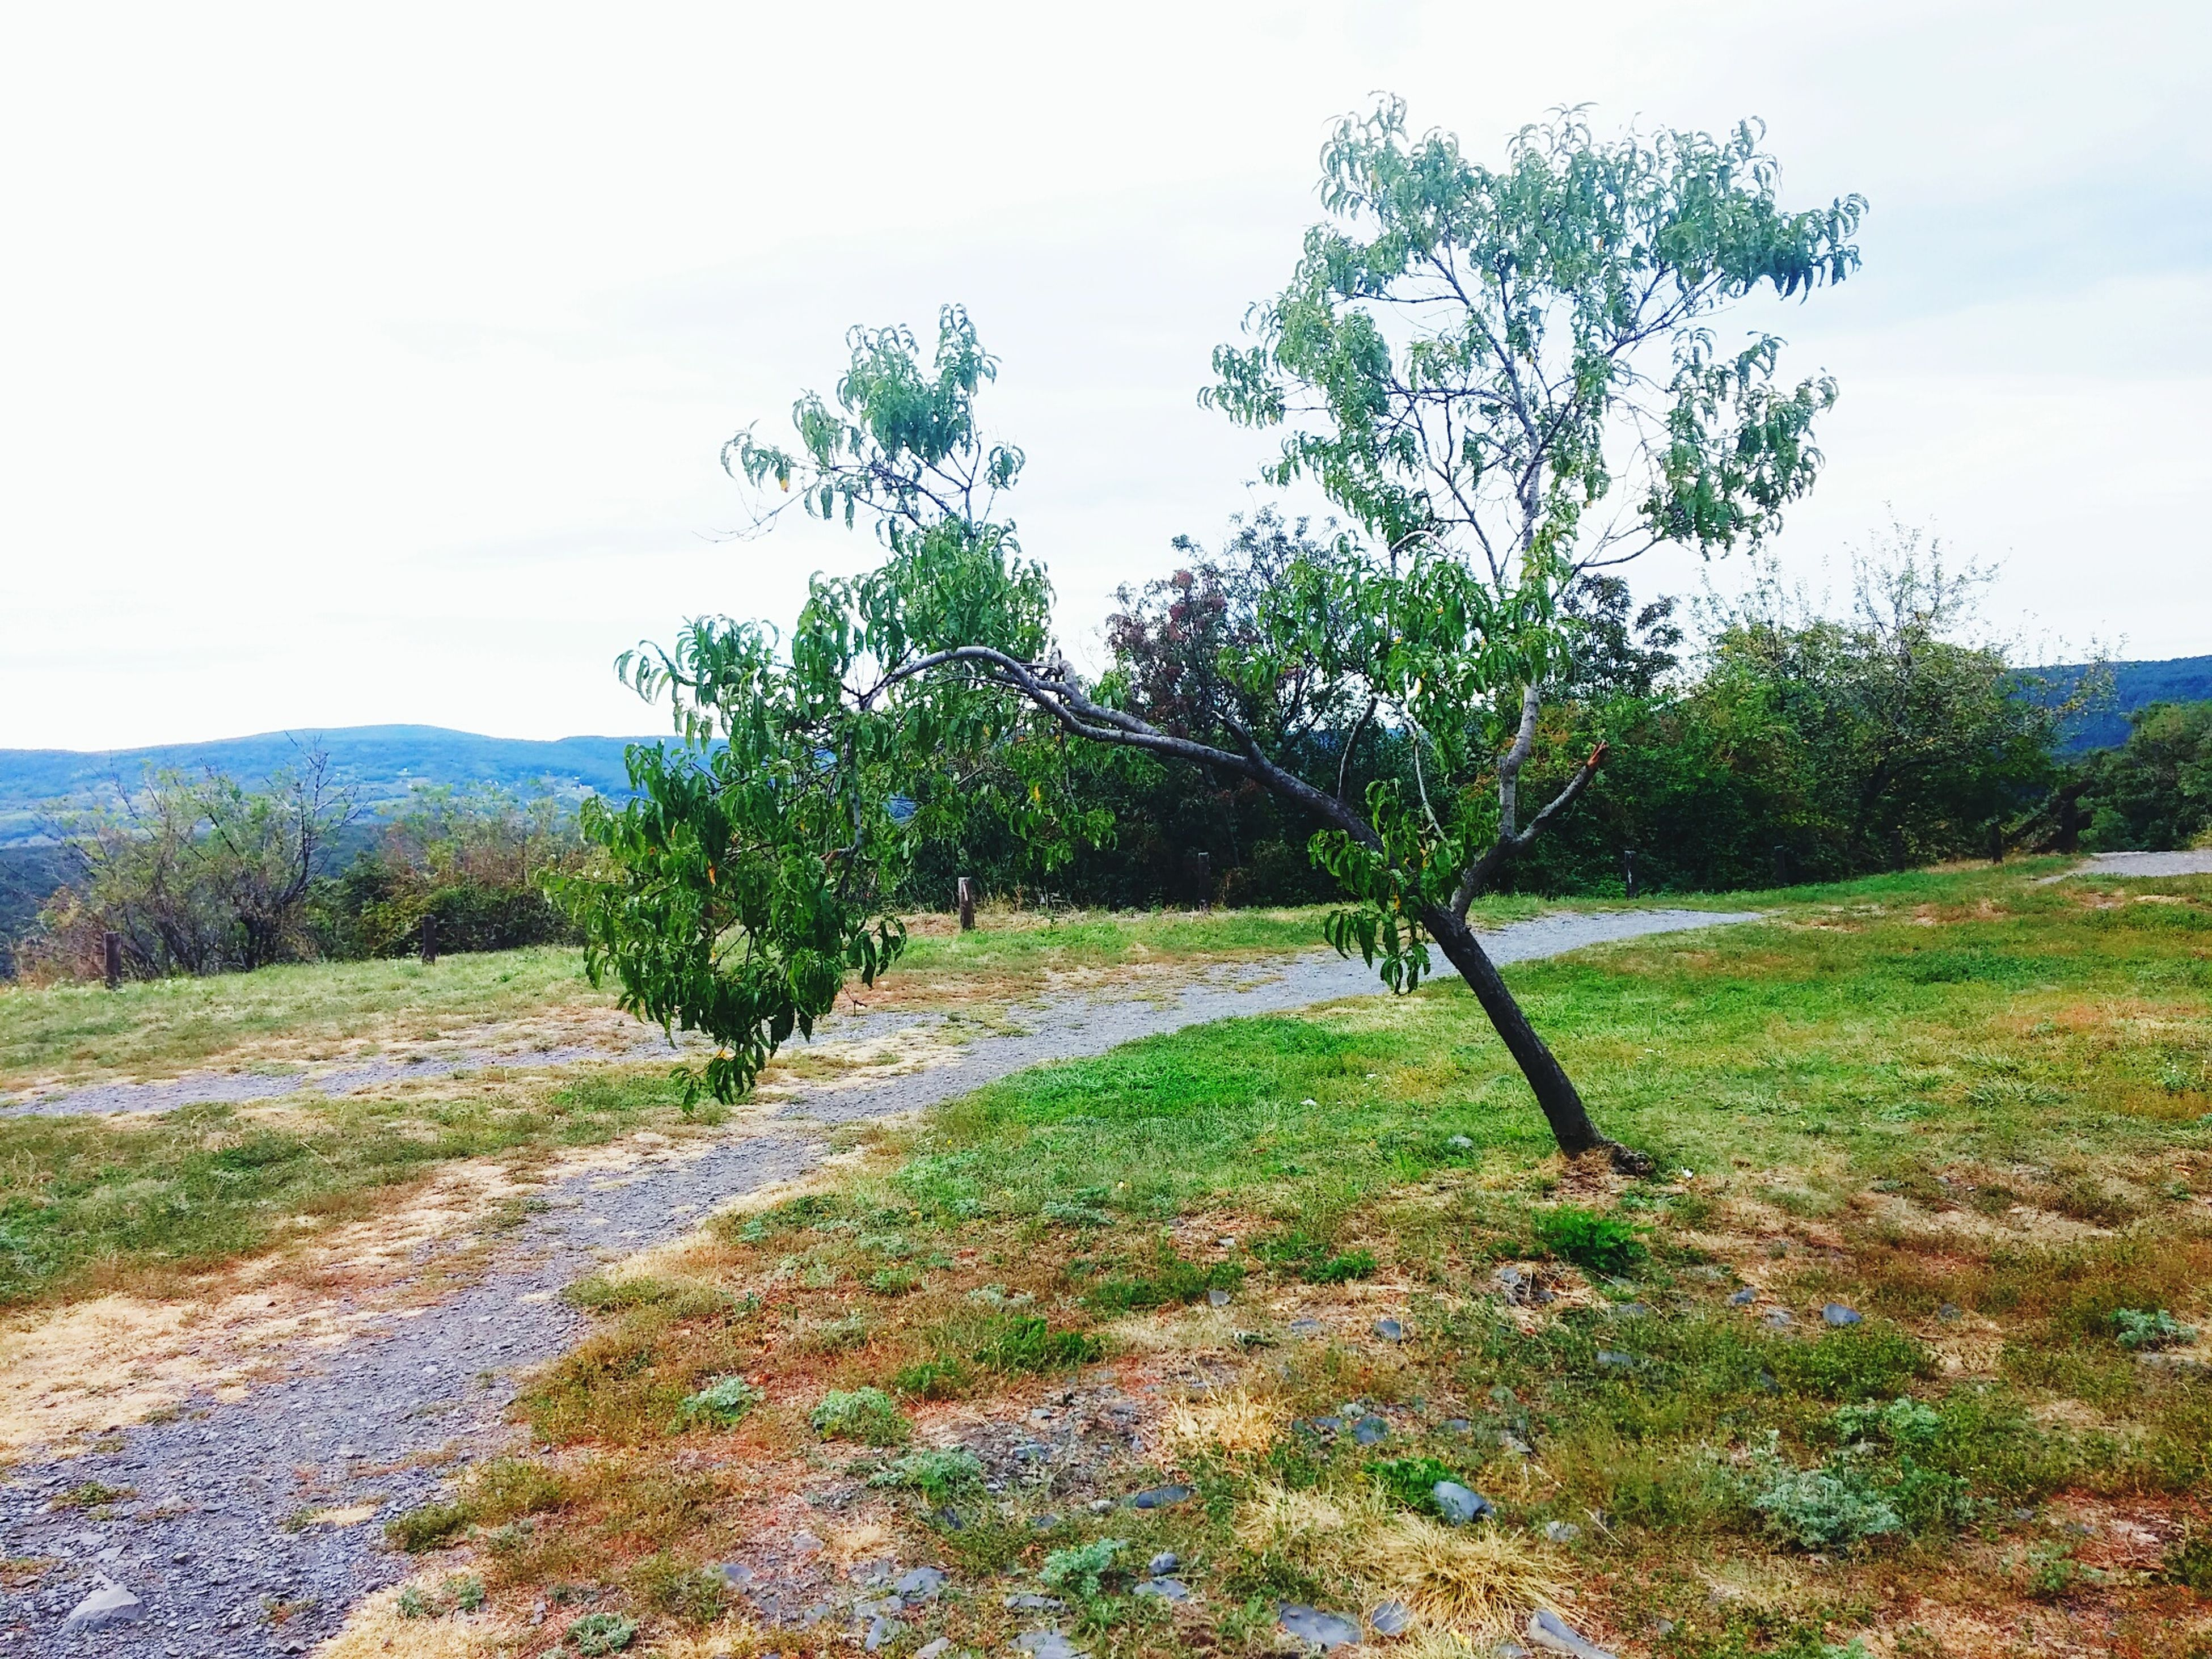 tree, tranquil scene, tranquility, scenics, clear sky, growth, landscape, field, nature, beauty in nature, tree trunk, green color, mountain, sky, non-urban scene, branch, agriculture, remote, day, outdoors, rural scene, solitude, farm, no people, countryside, mountain range, grassy